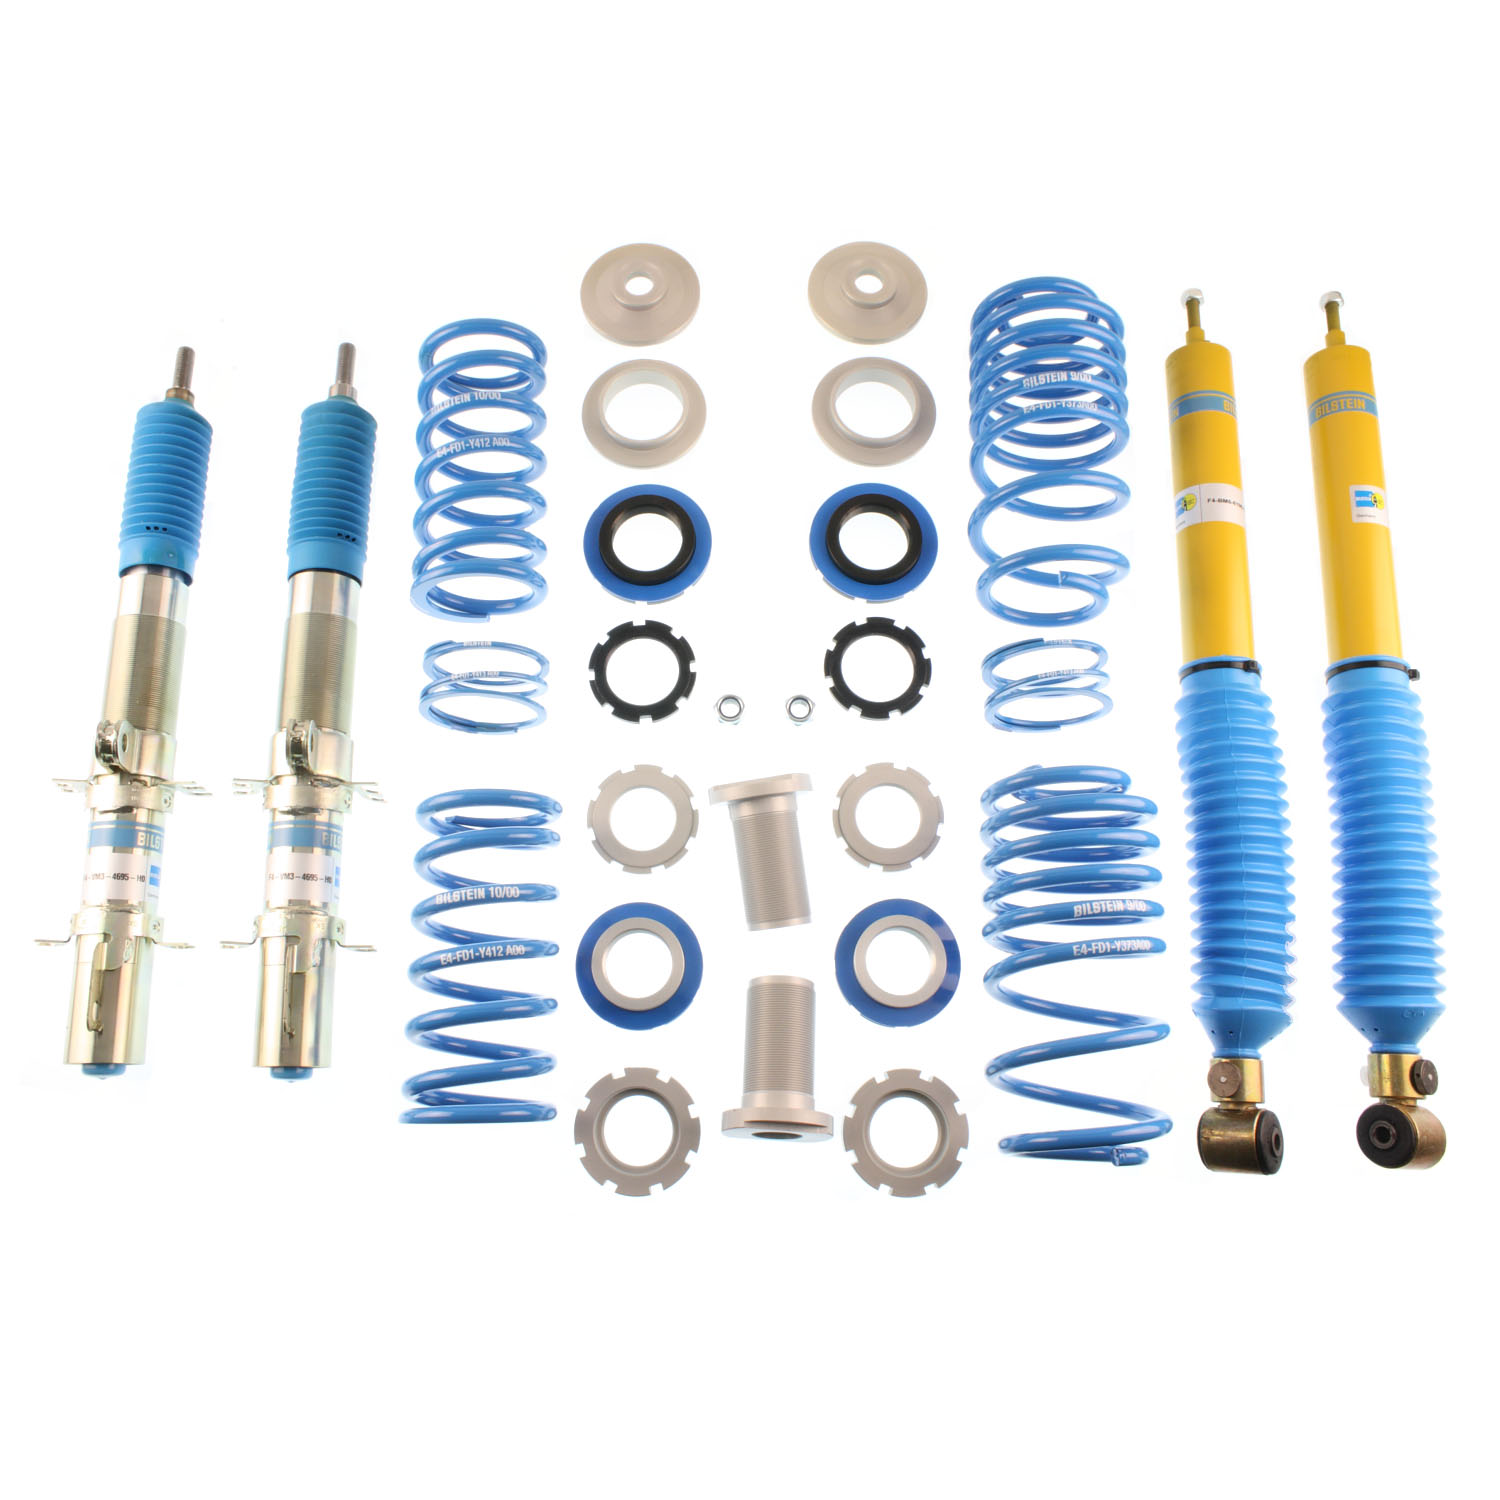 Bilstein (PSS9) Performance Suspension System for Audi TT (Mk.1)